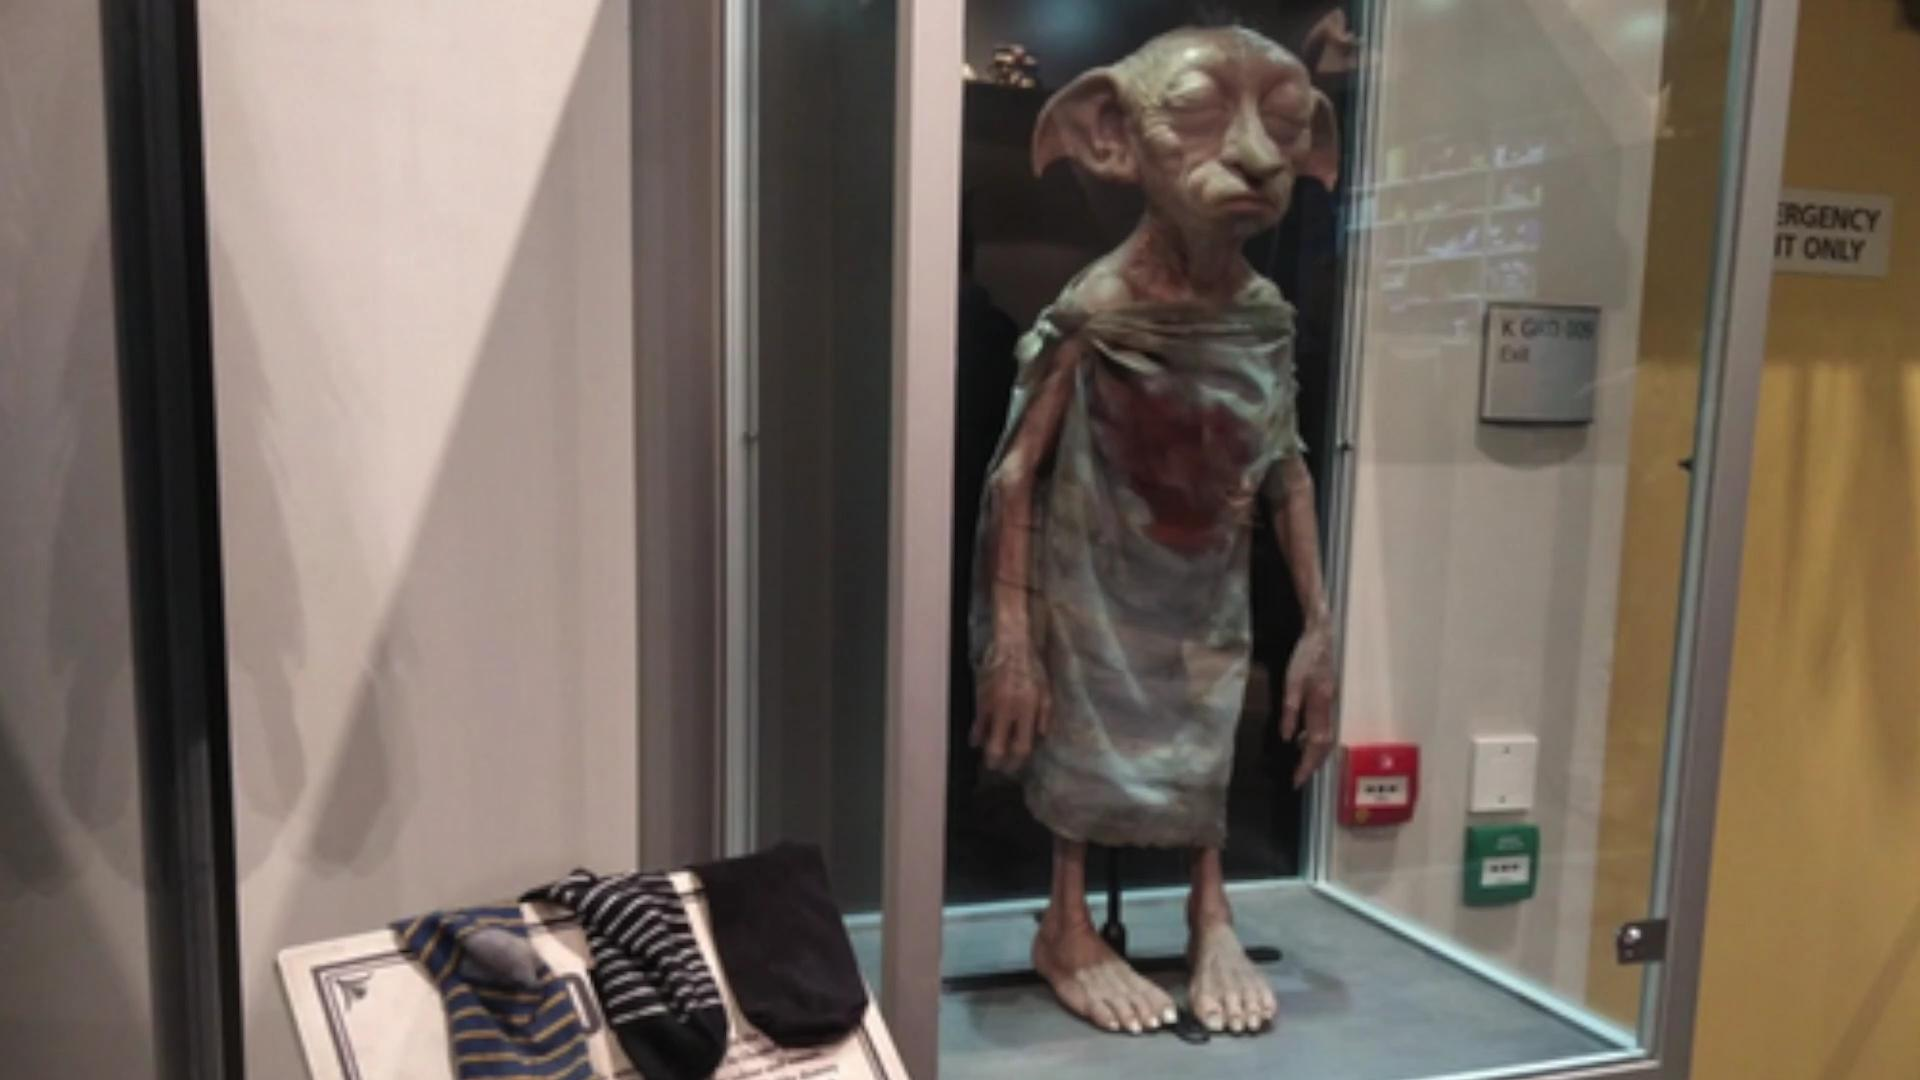 'Harry Potter' fans in London have started leaving socks in an attempt to free a Dobby statue from a glass case. Emily Eden (@edenandtheapple) has the story.